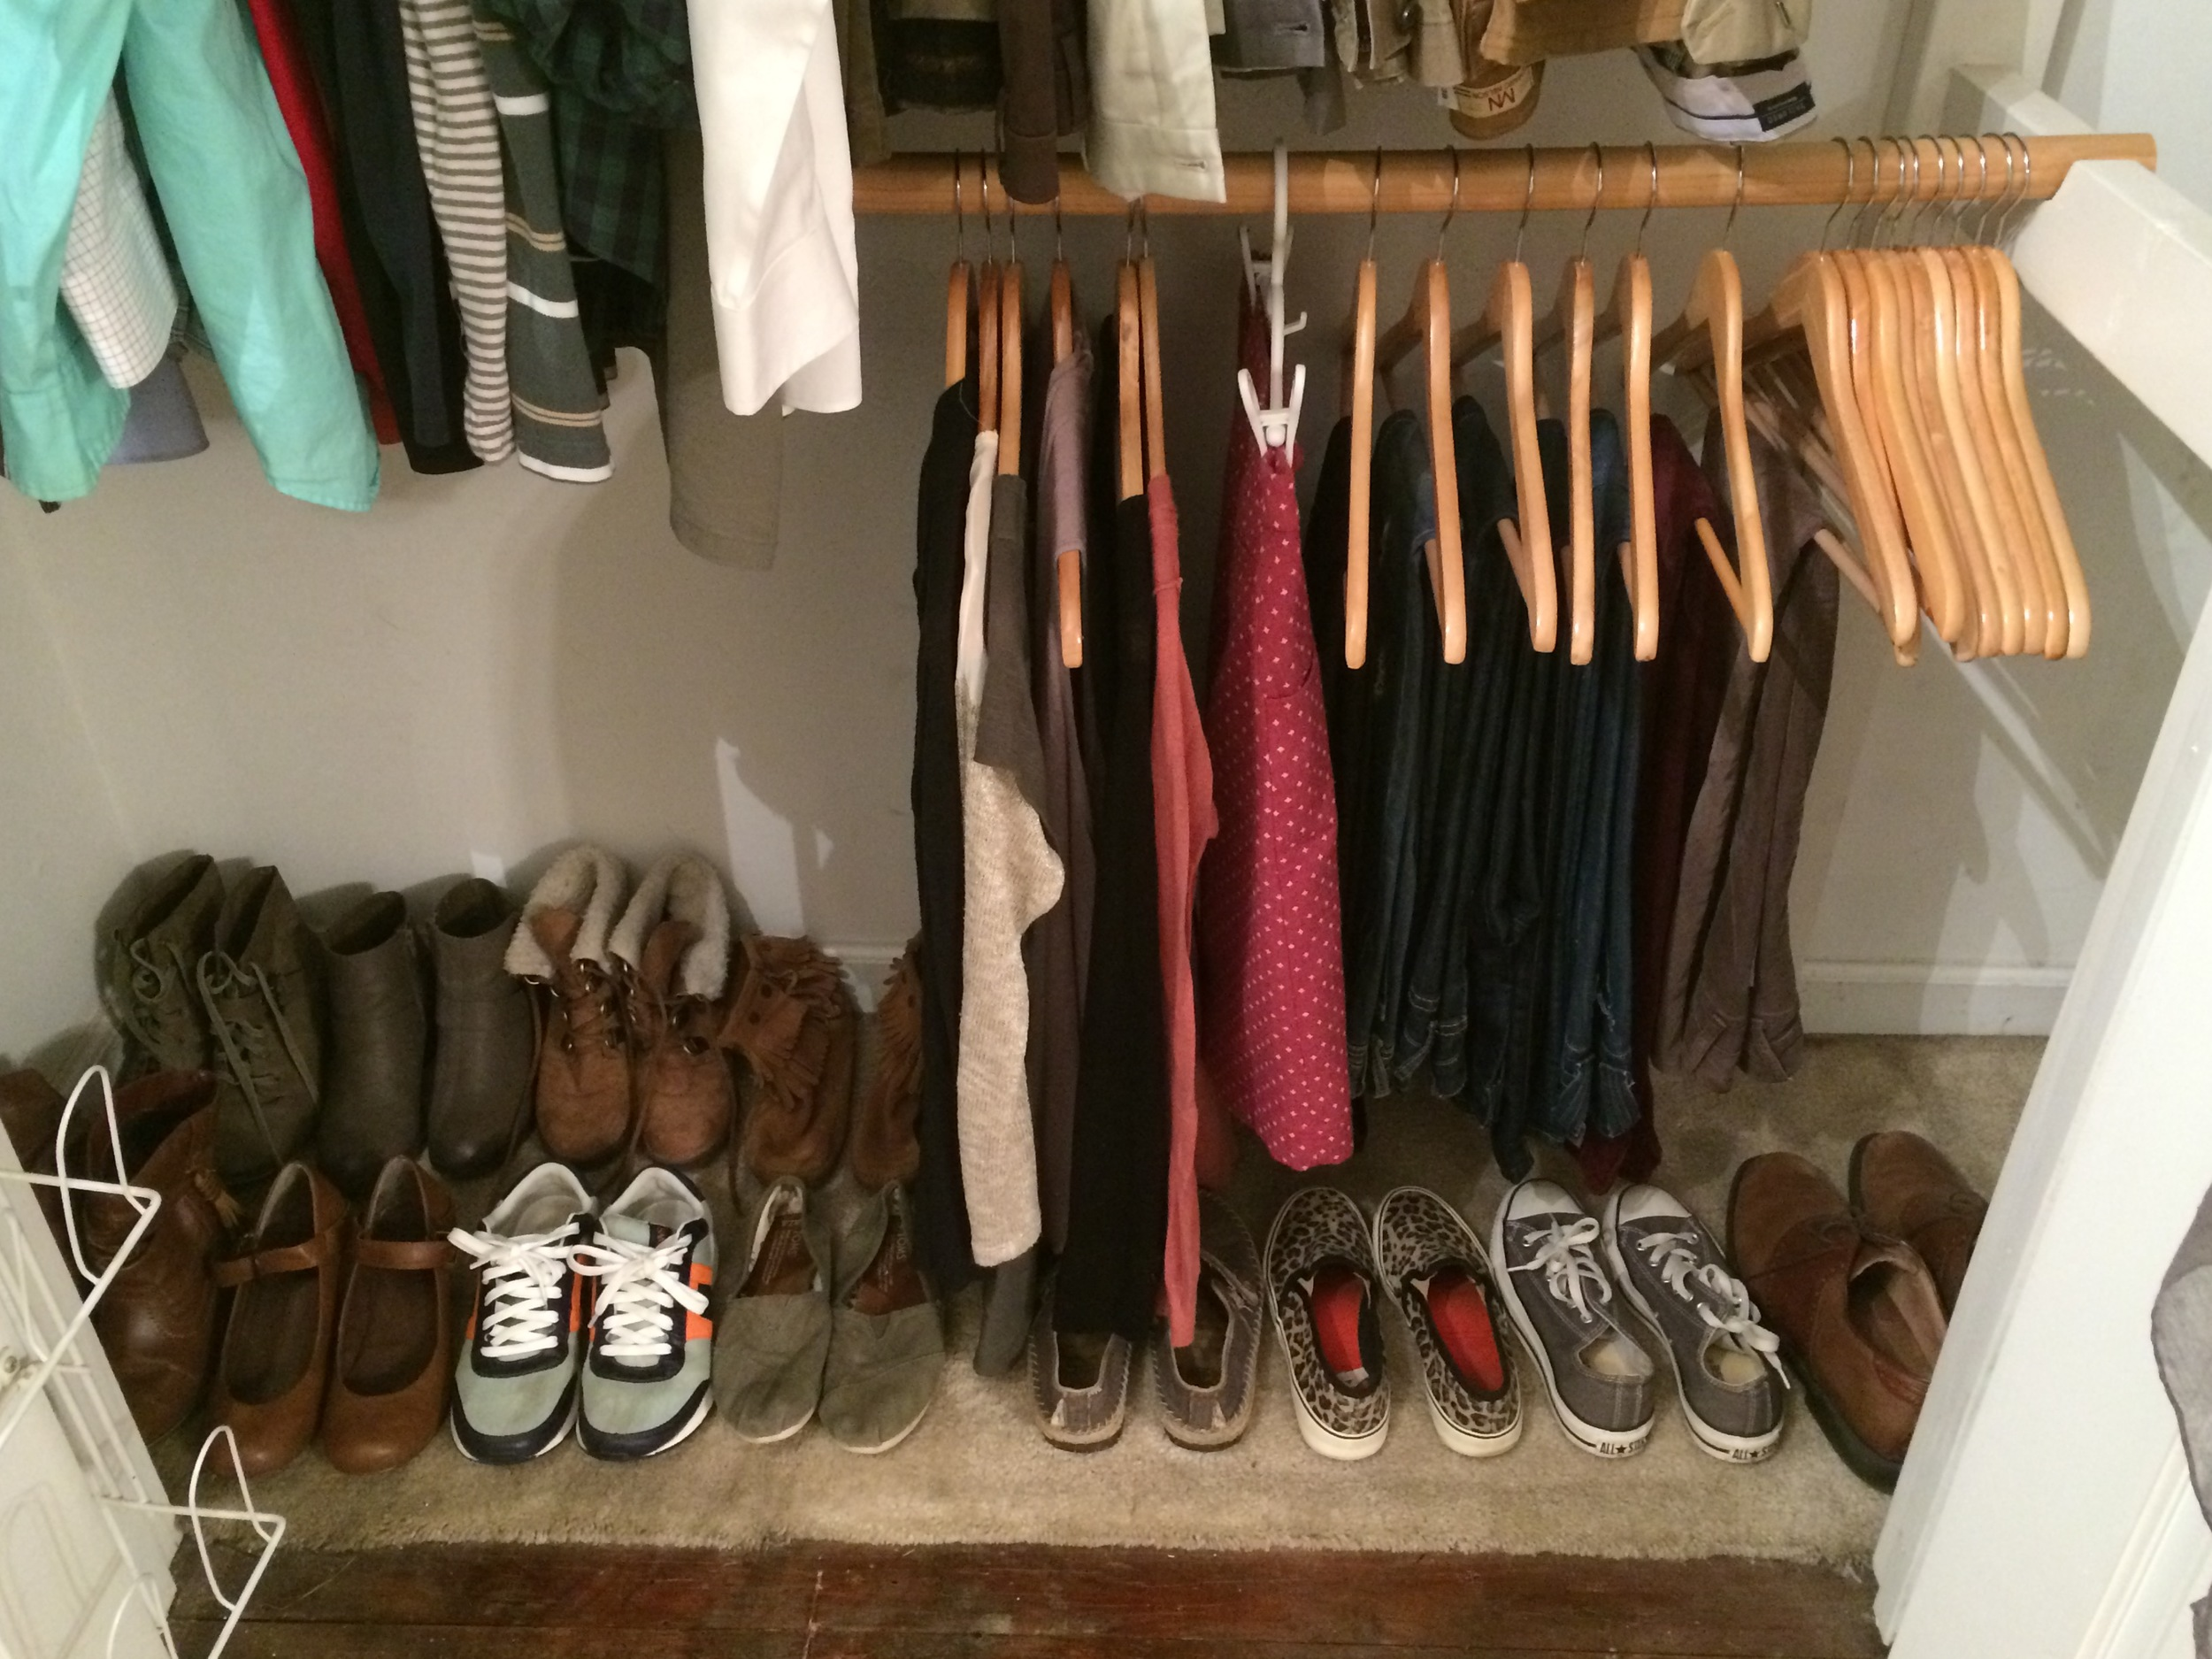 I know my closet's not pretty, but this is real life people. You work with what you've got :)